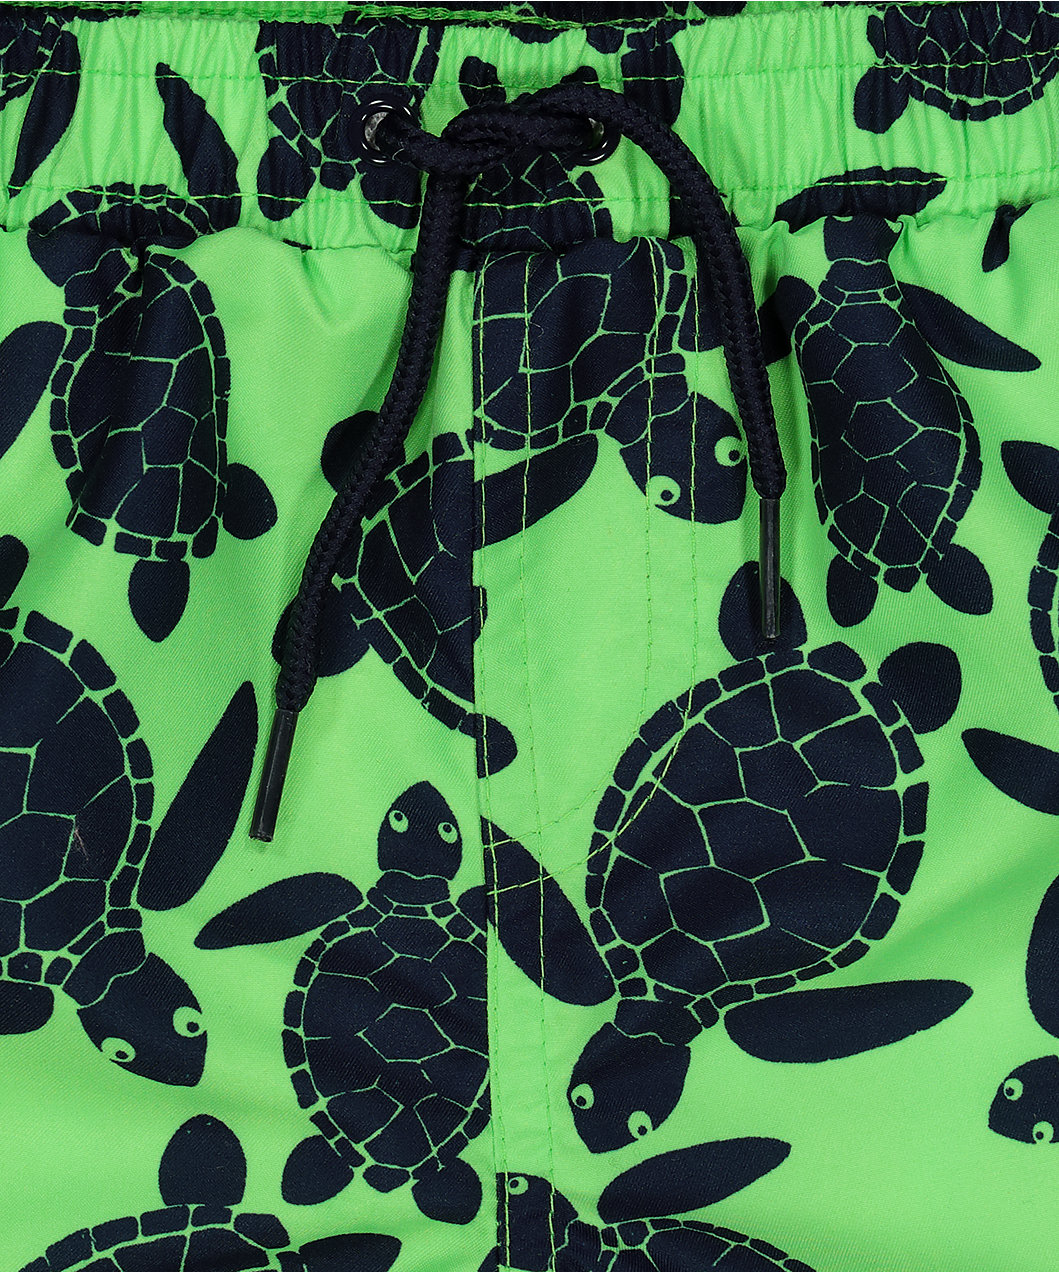 bab3984396 turtle swim shorts and rash vest. hover over image to zoom